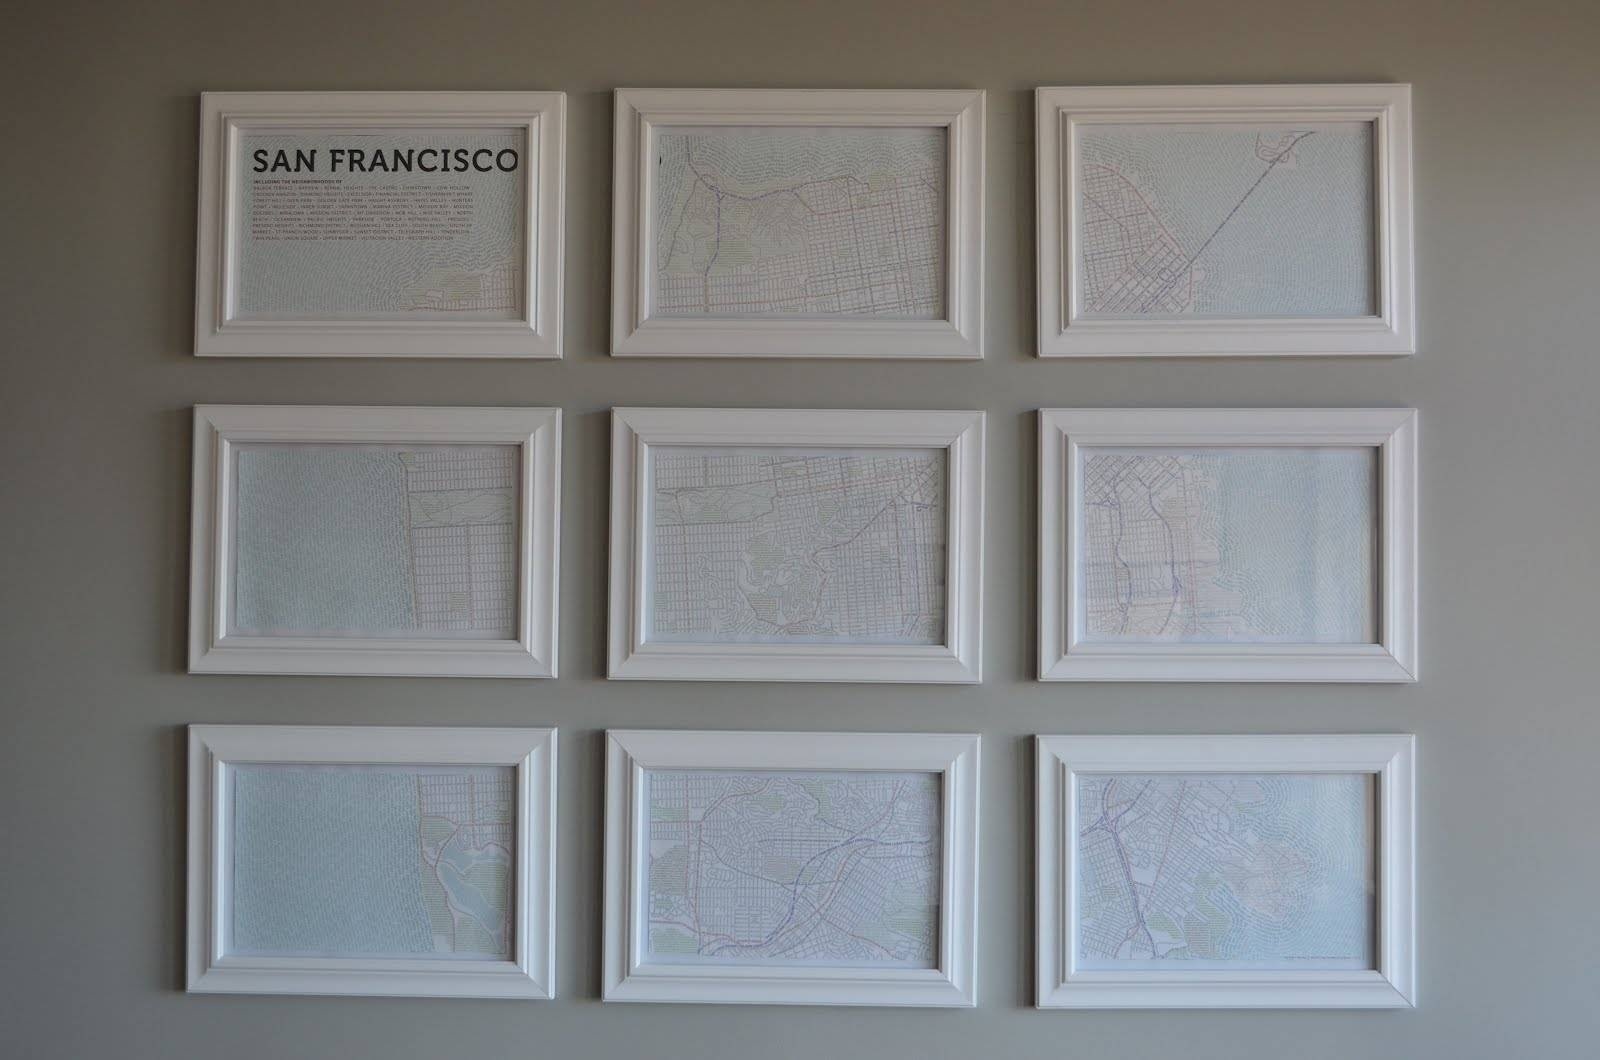 Map Wall Art Diy | They So Loved Events | Wine Country & San For 2017 Maps For Wall Art (View 11 of 20)